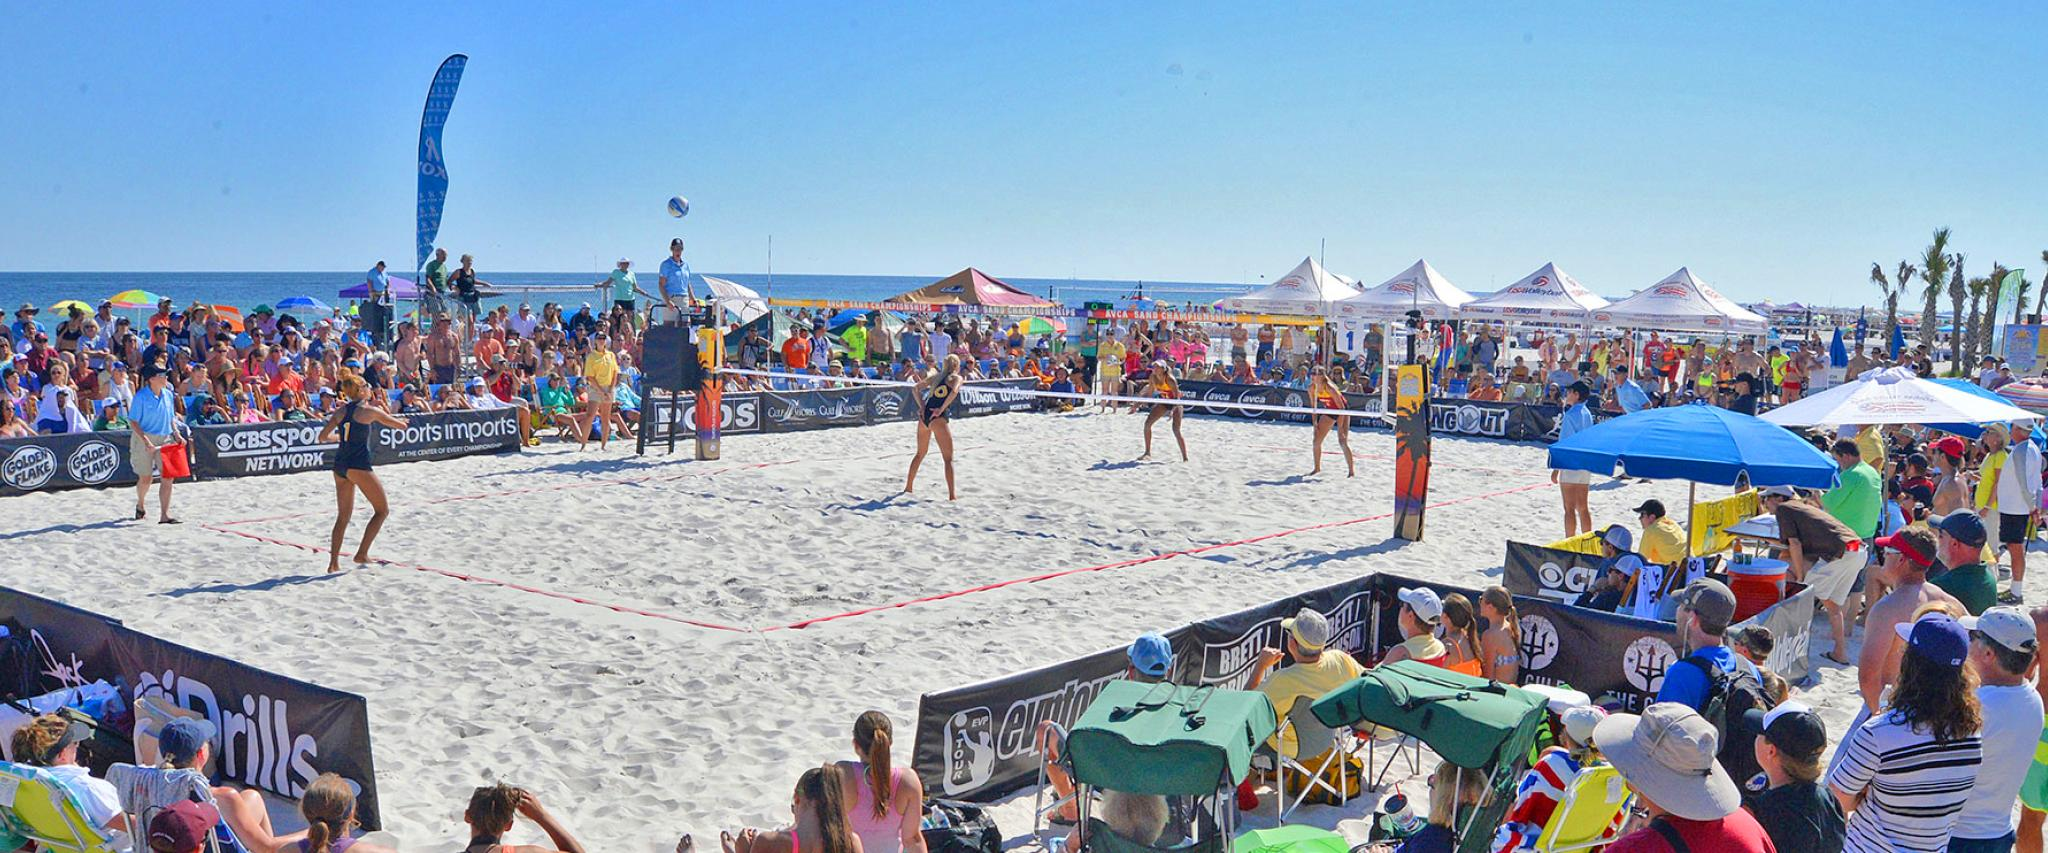 National Volleyball Championship in Gulf Shores